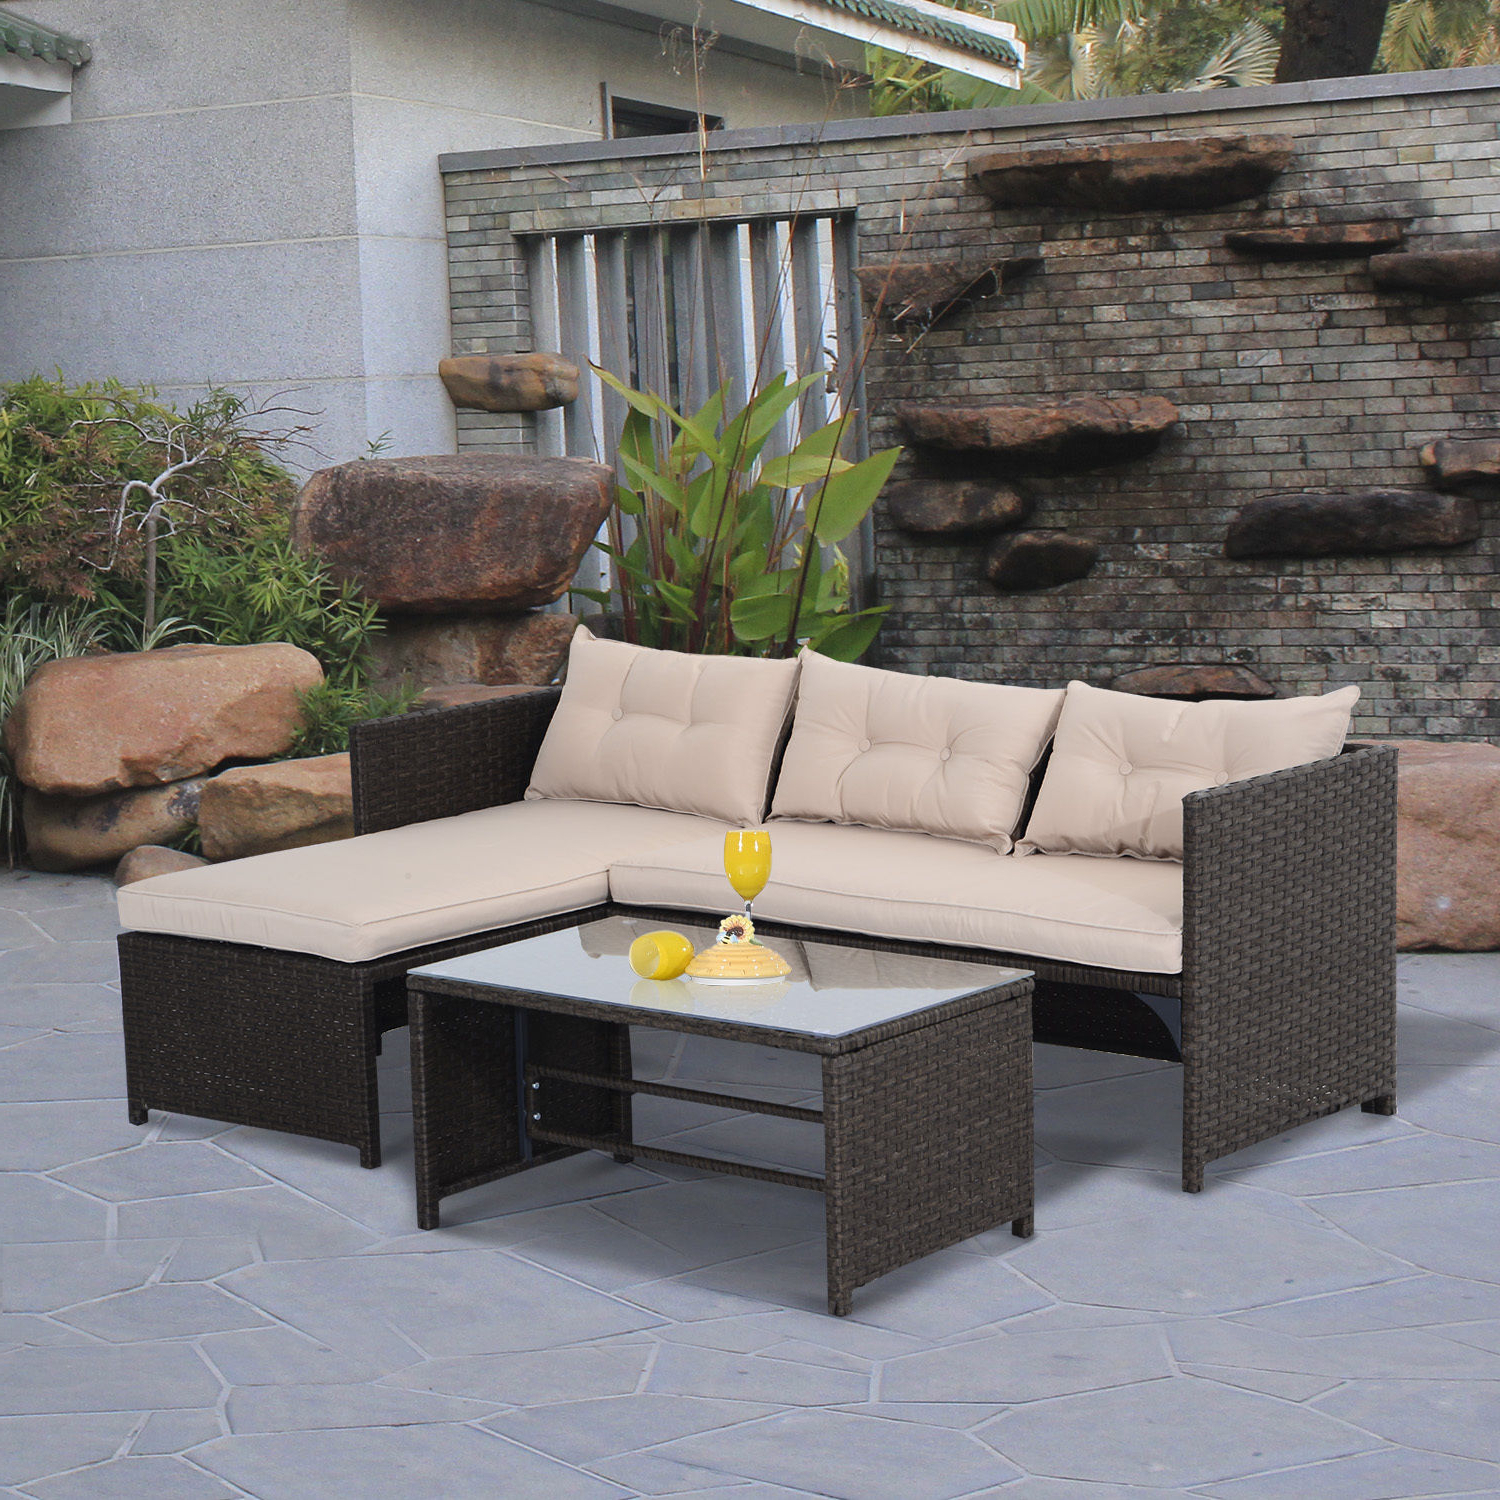 Outdoor 3 Piece Wicker Chaise Lounges And Table Sets Within 2019 Details About 3Pc Patio Rattan Wicker Sofa Set Cushined Couch Furniture  Outdoor Garden (View 18 of 25)